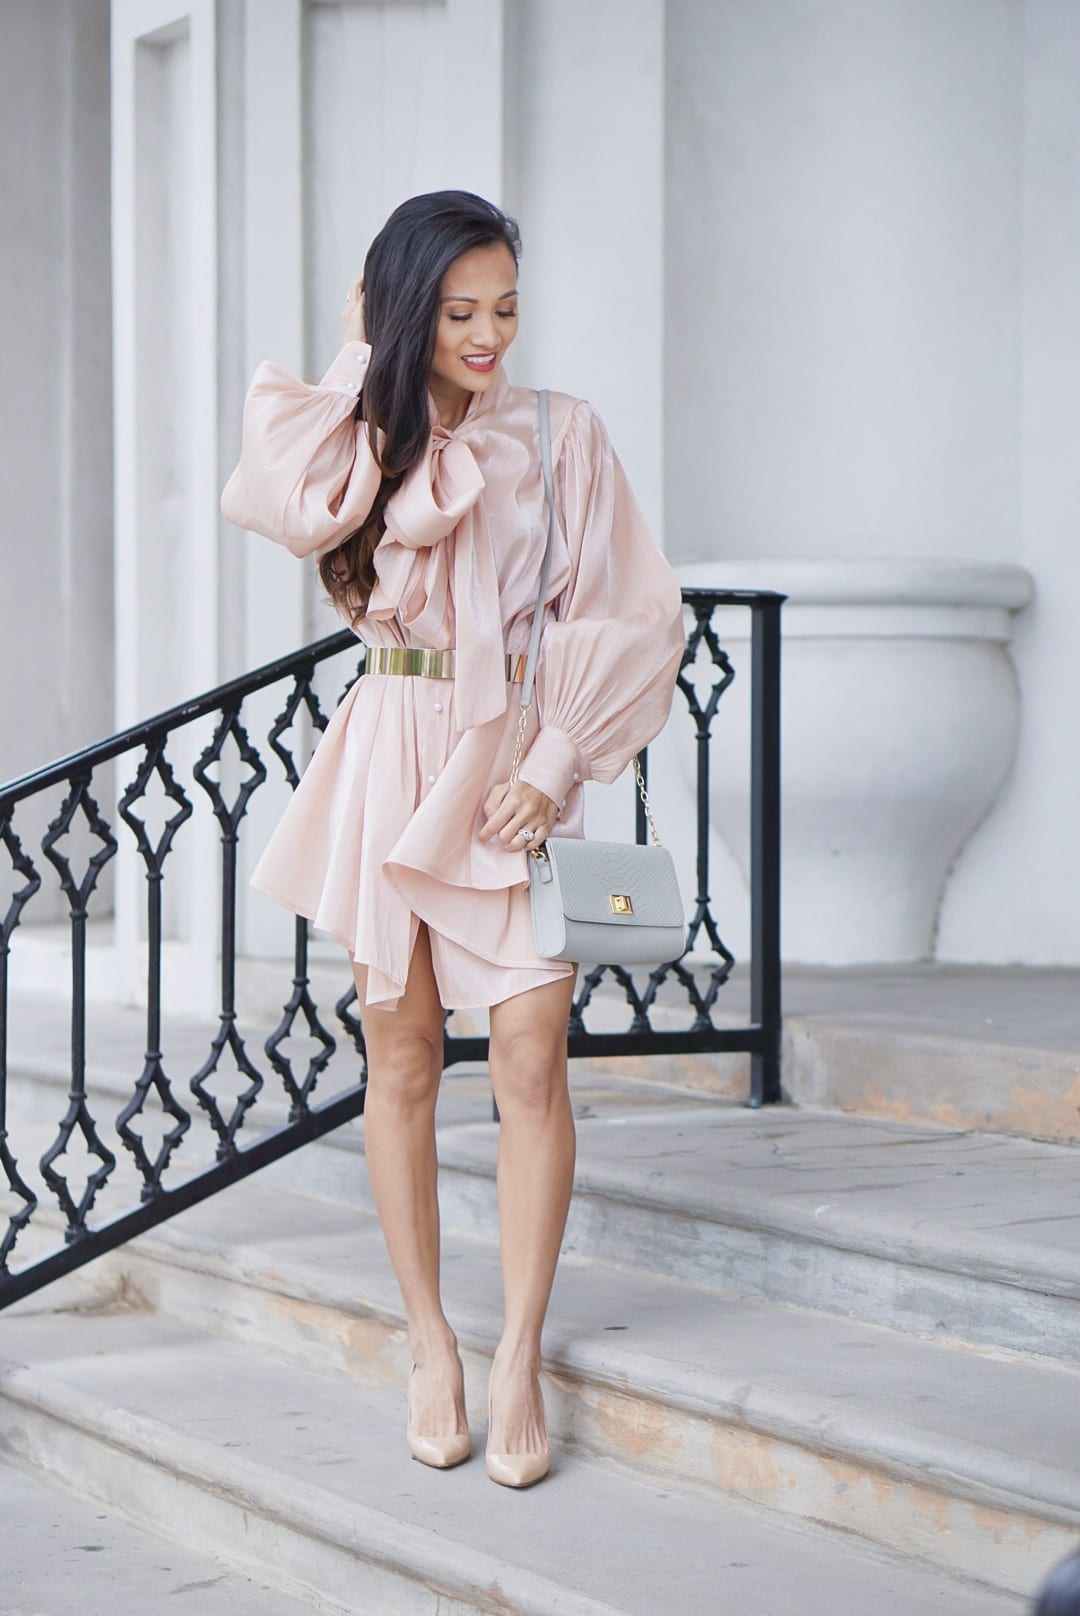 bow tie dress, pink tunic, #workwear, summer style, puff sleeves, Manolo blanik, Kendra Scott earrings, Gigi New York bag, interns, #bloggingtips, blogging tips, hiring interns, interviewing interns